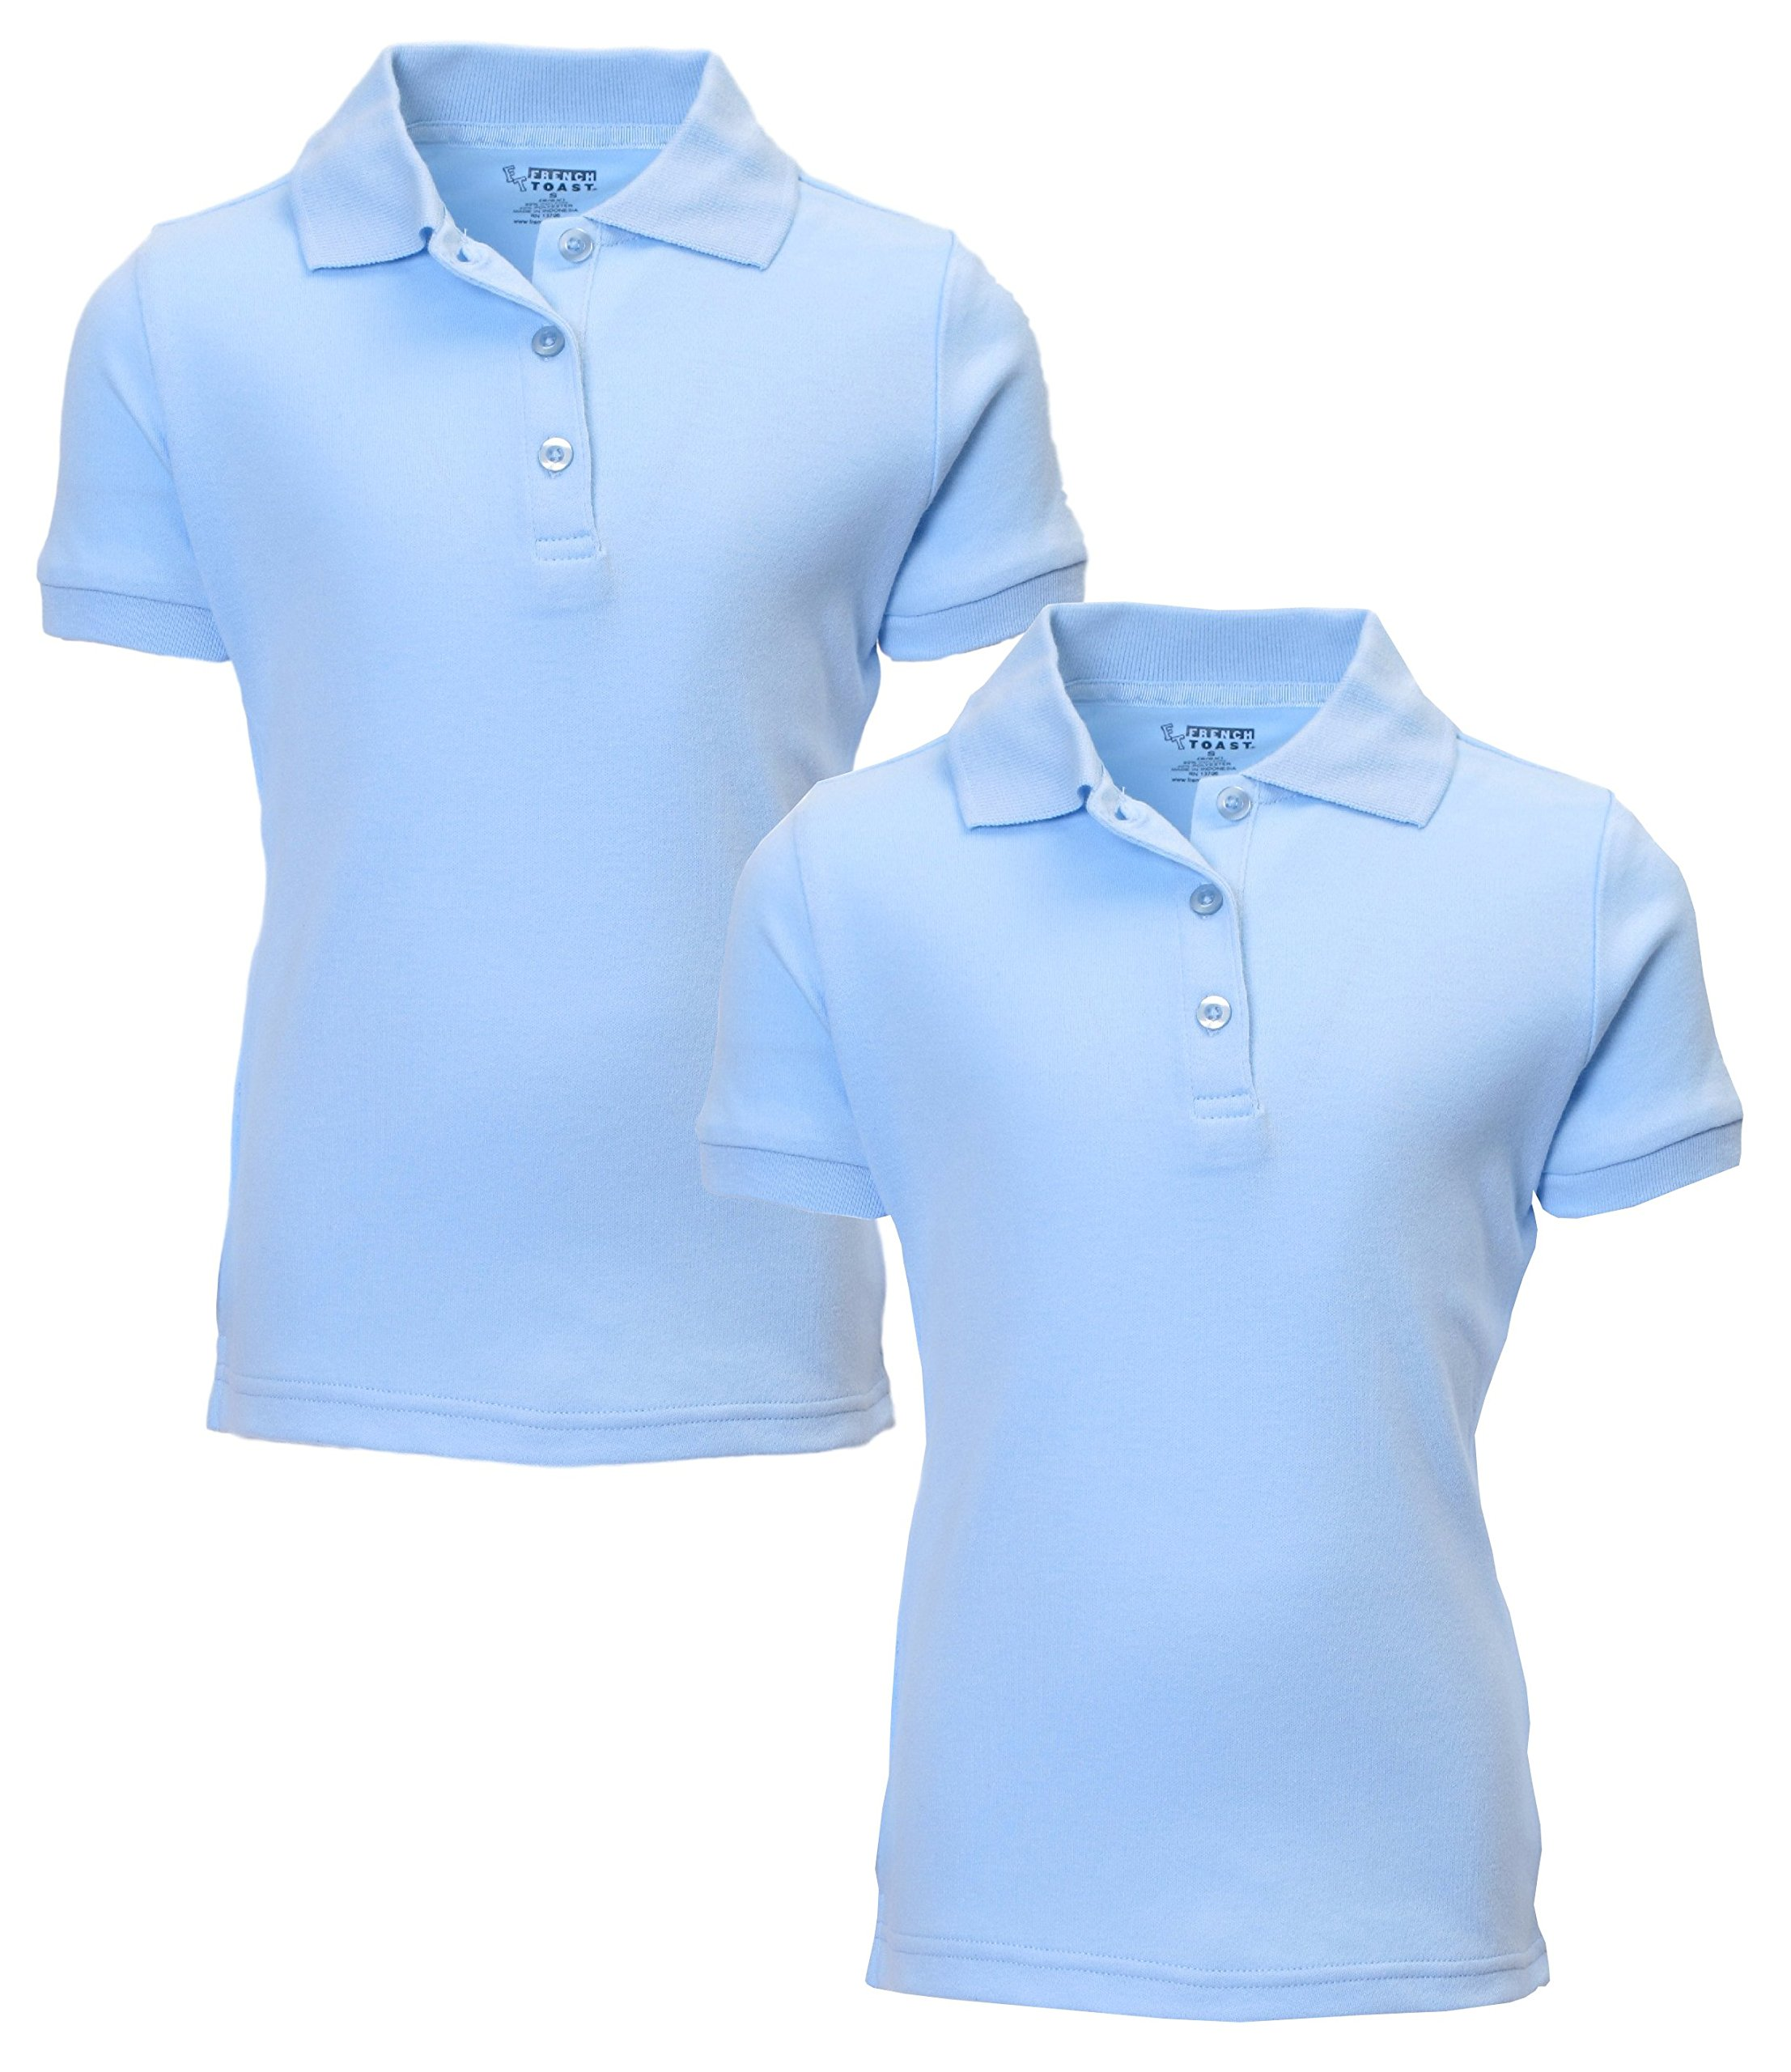 French Toast Girl's 2 Pack Uniform Short Sleeve Polo Shirts 4/5 LT Blue